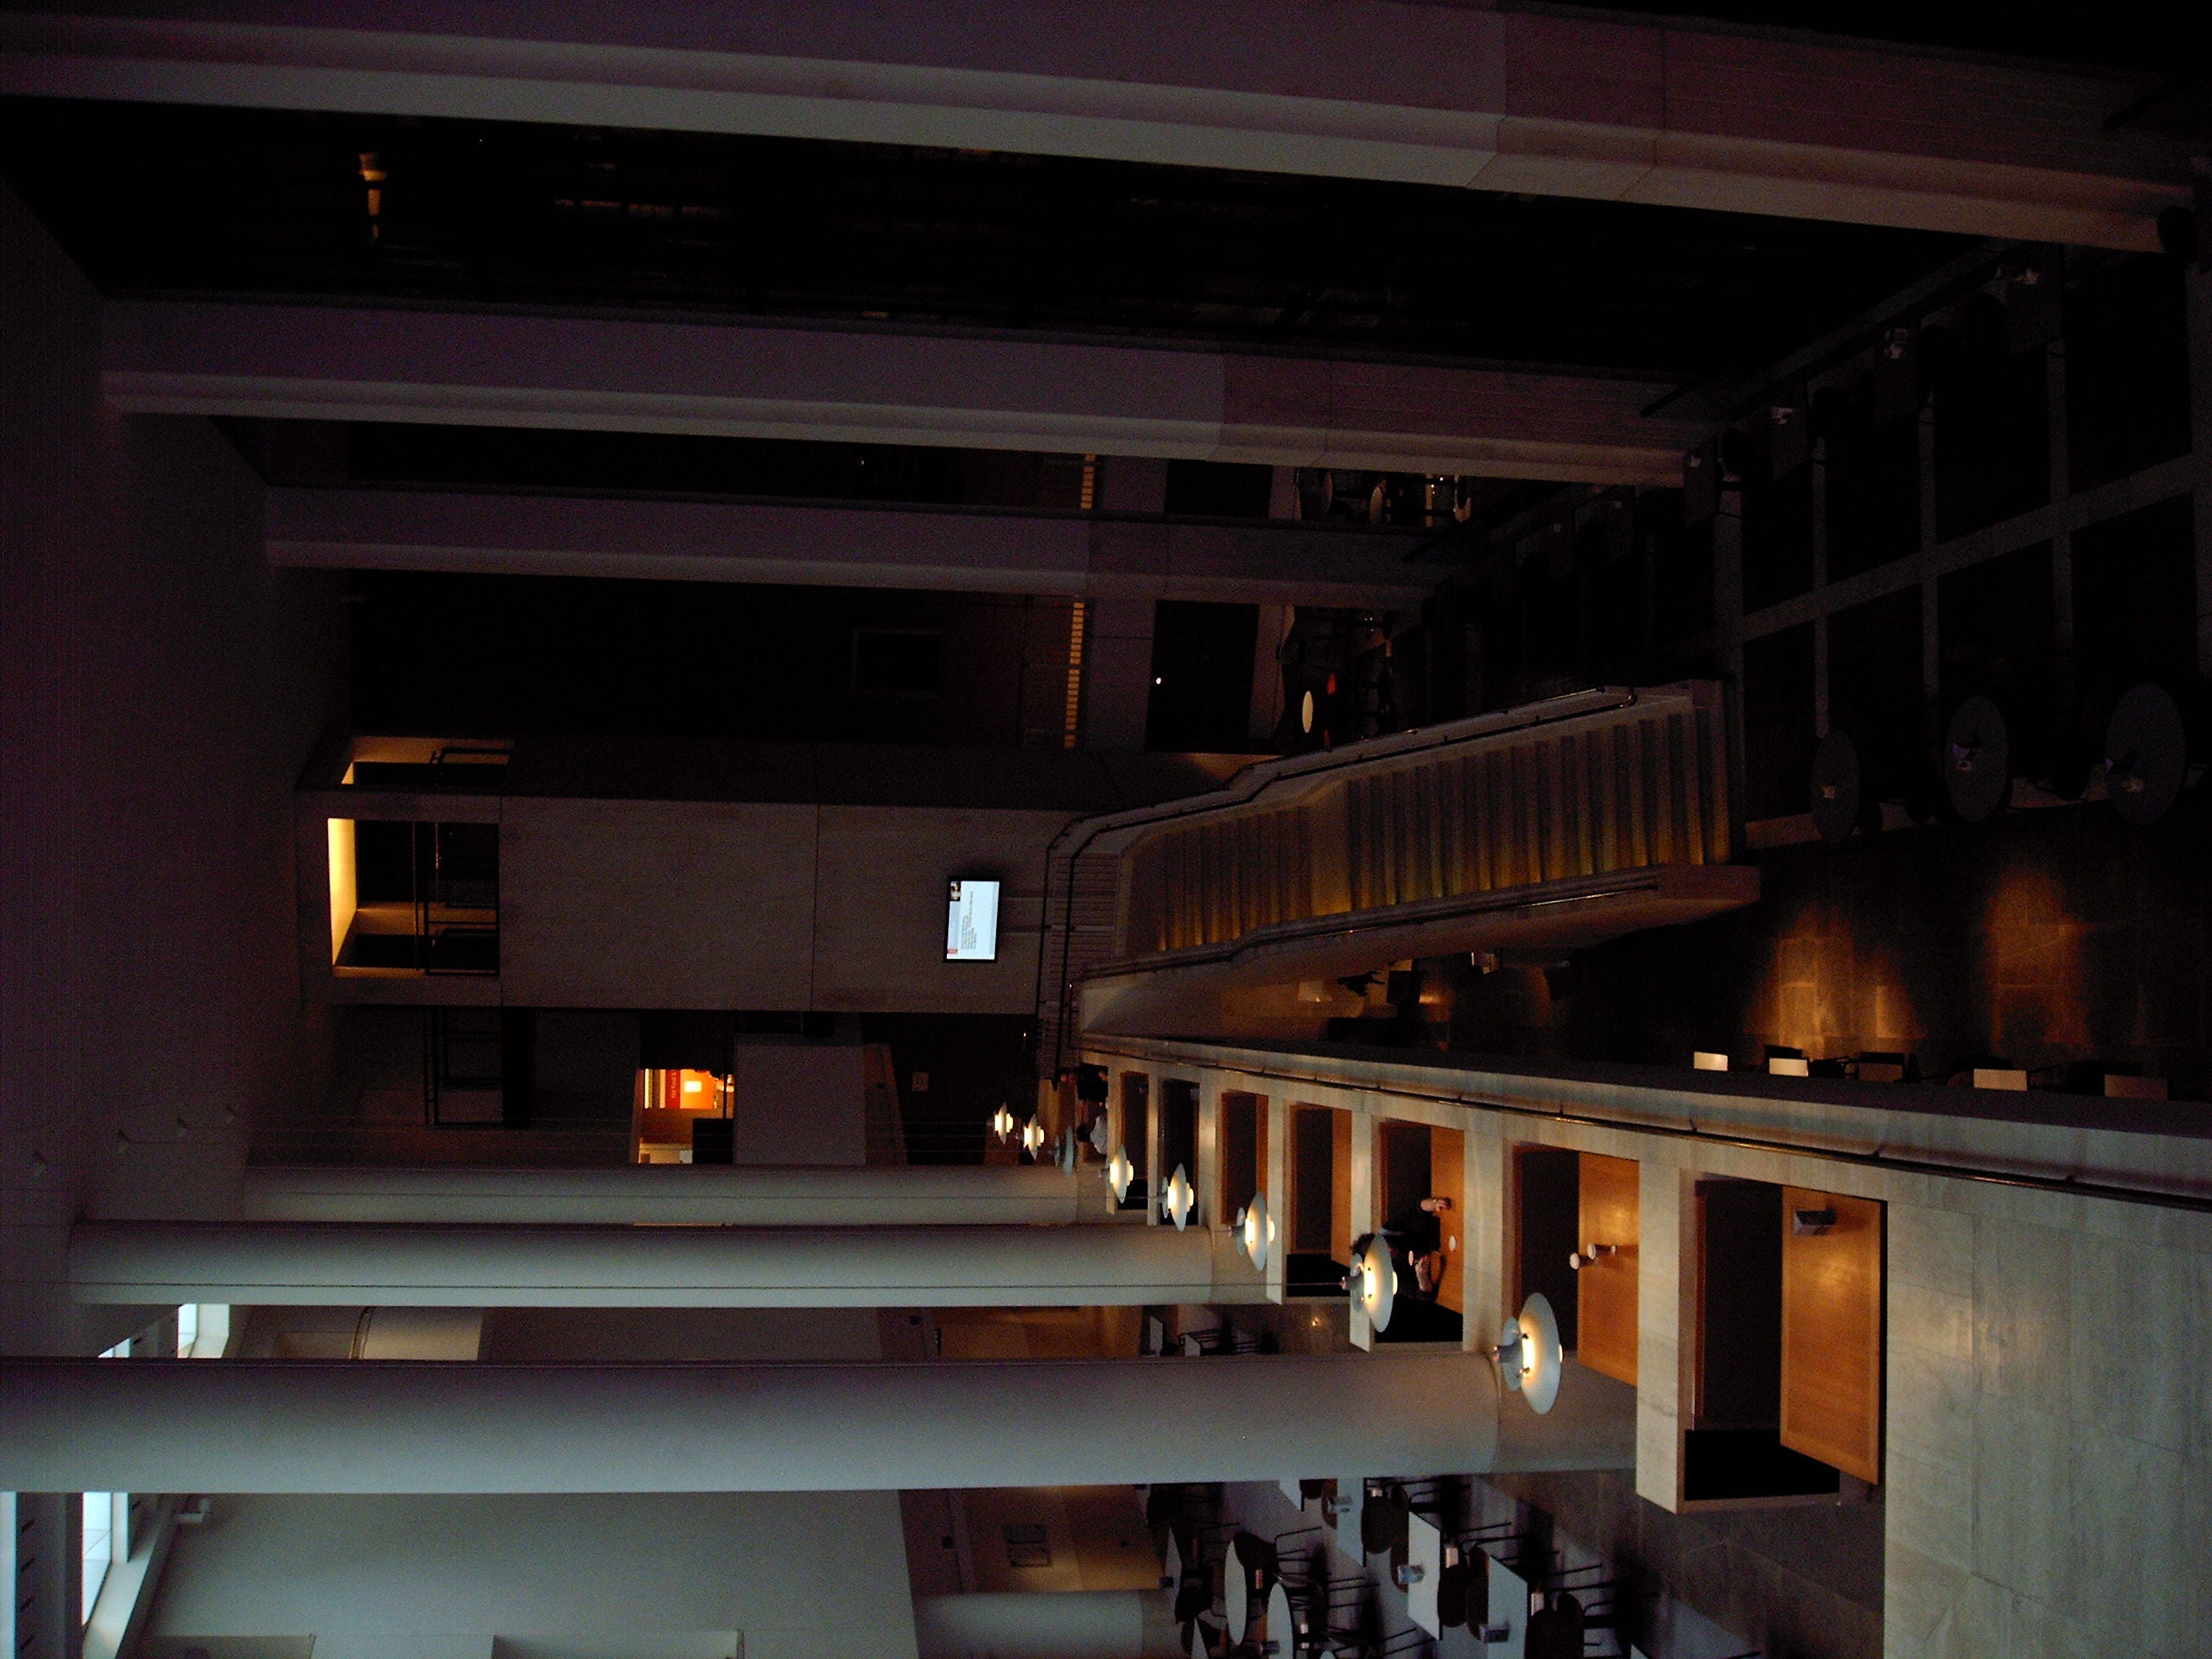 Restaurante en British Library